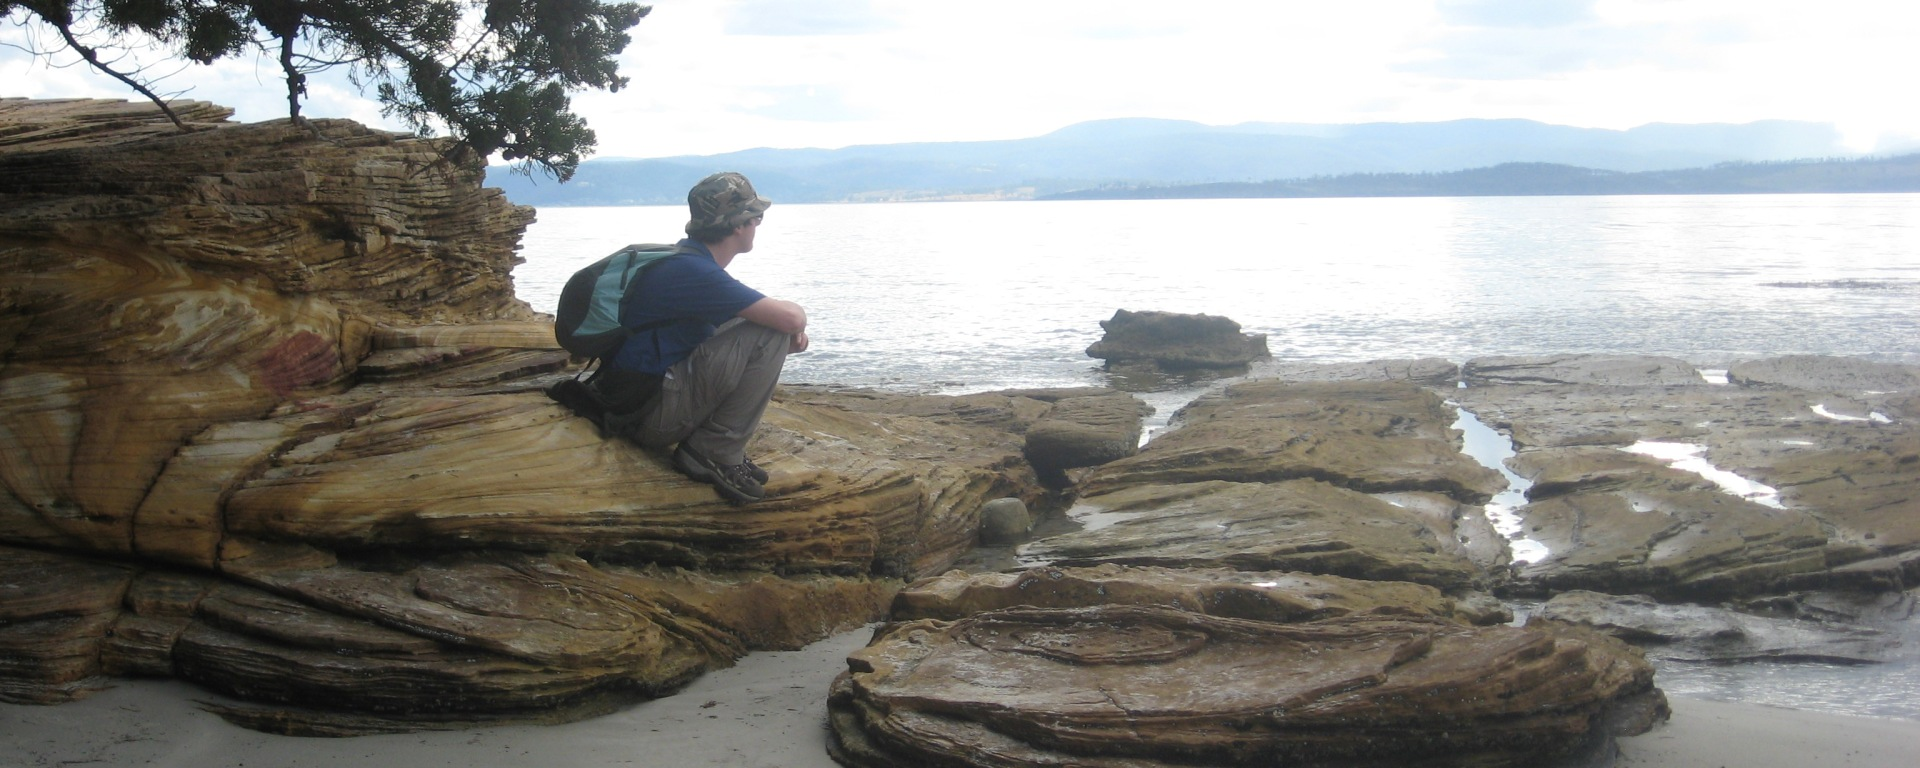 Me, looking out to sea, thinking of the future.